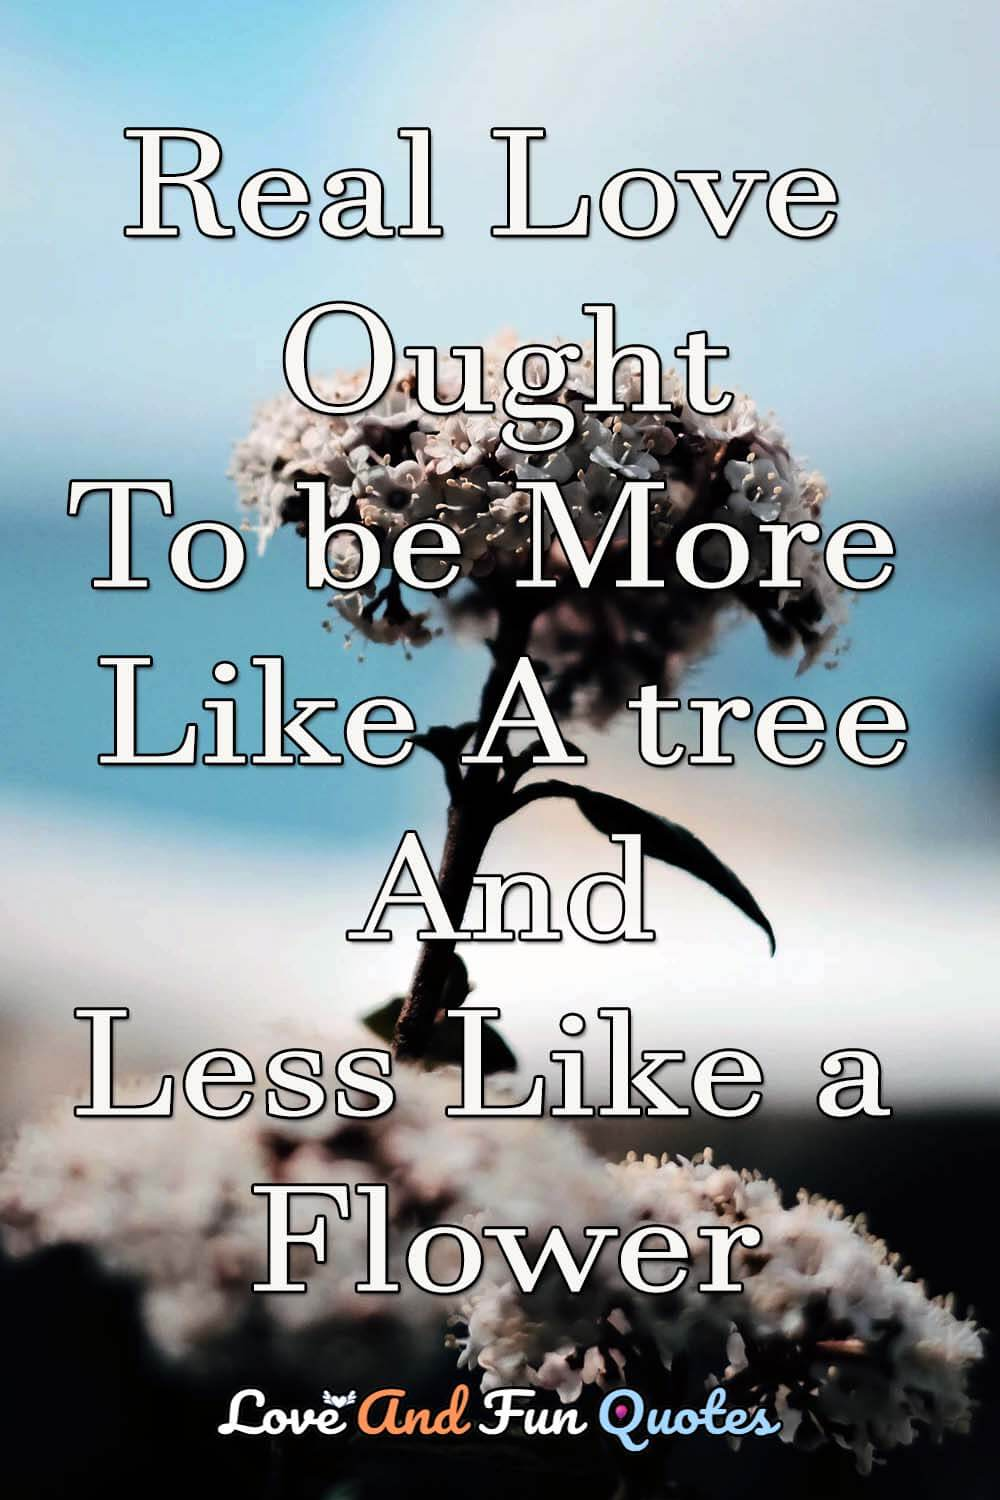 Real-love-ought-to-be-more-like-a-tree-and-less-like-a-flower